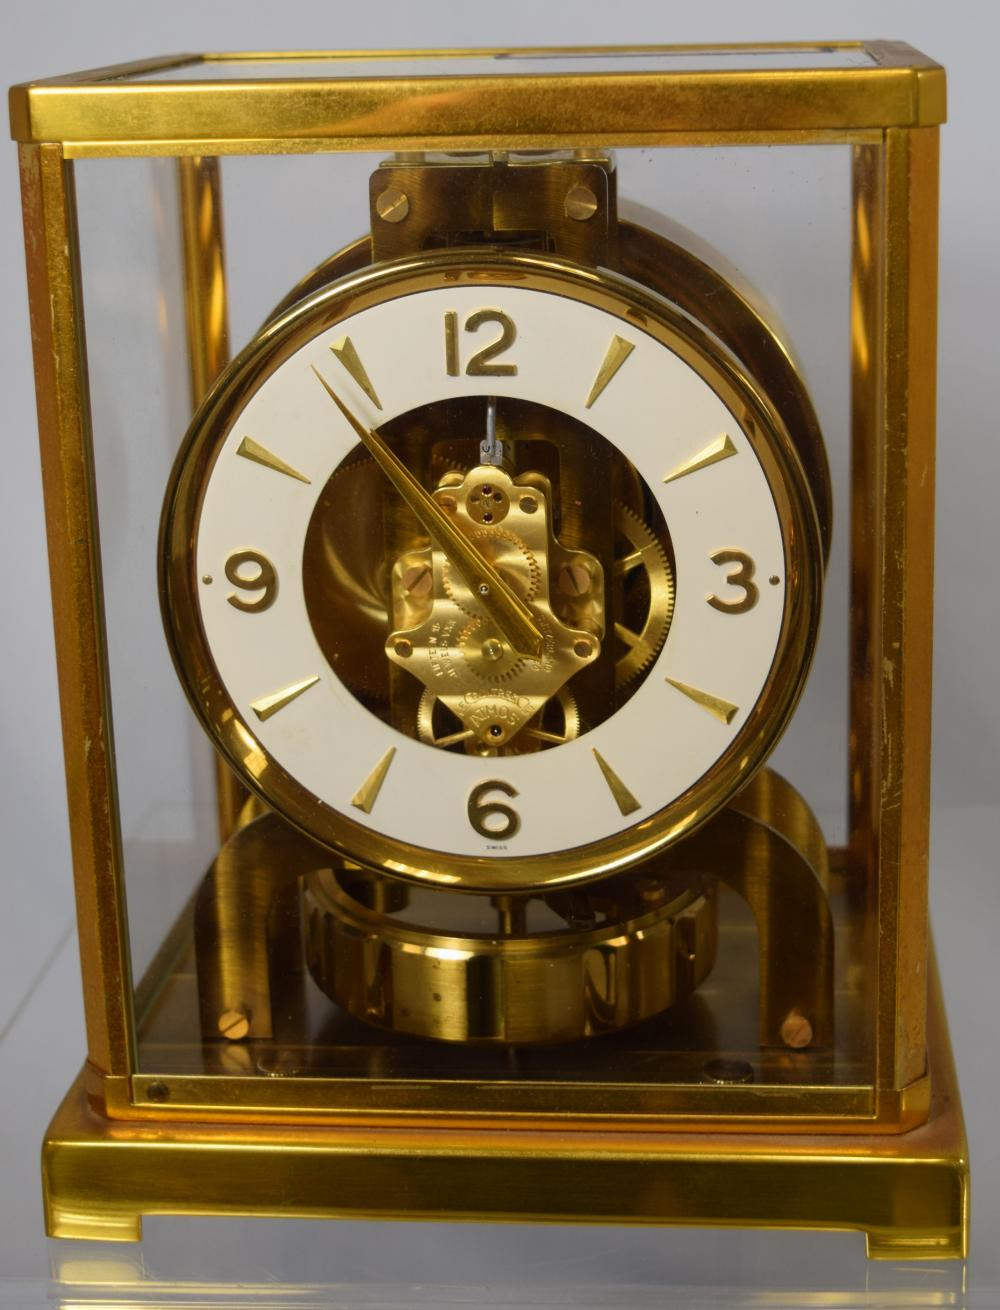 LE COULTRE ATMOS BRASS & GLASS CLOCK: